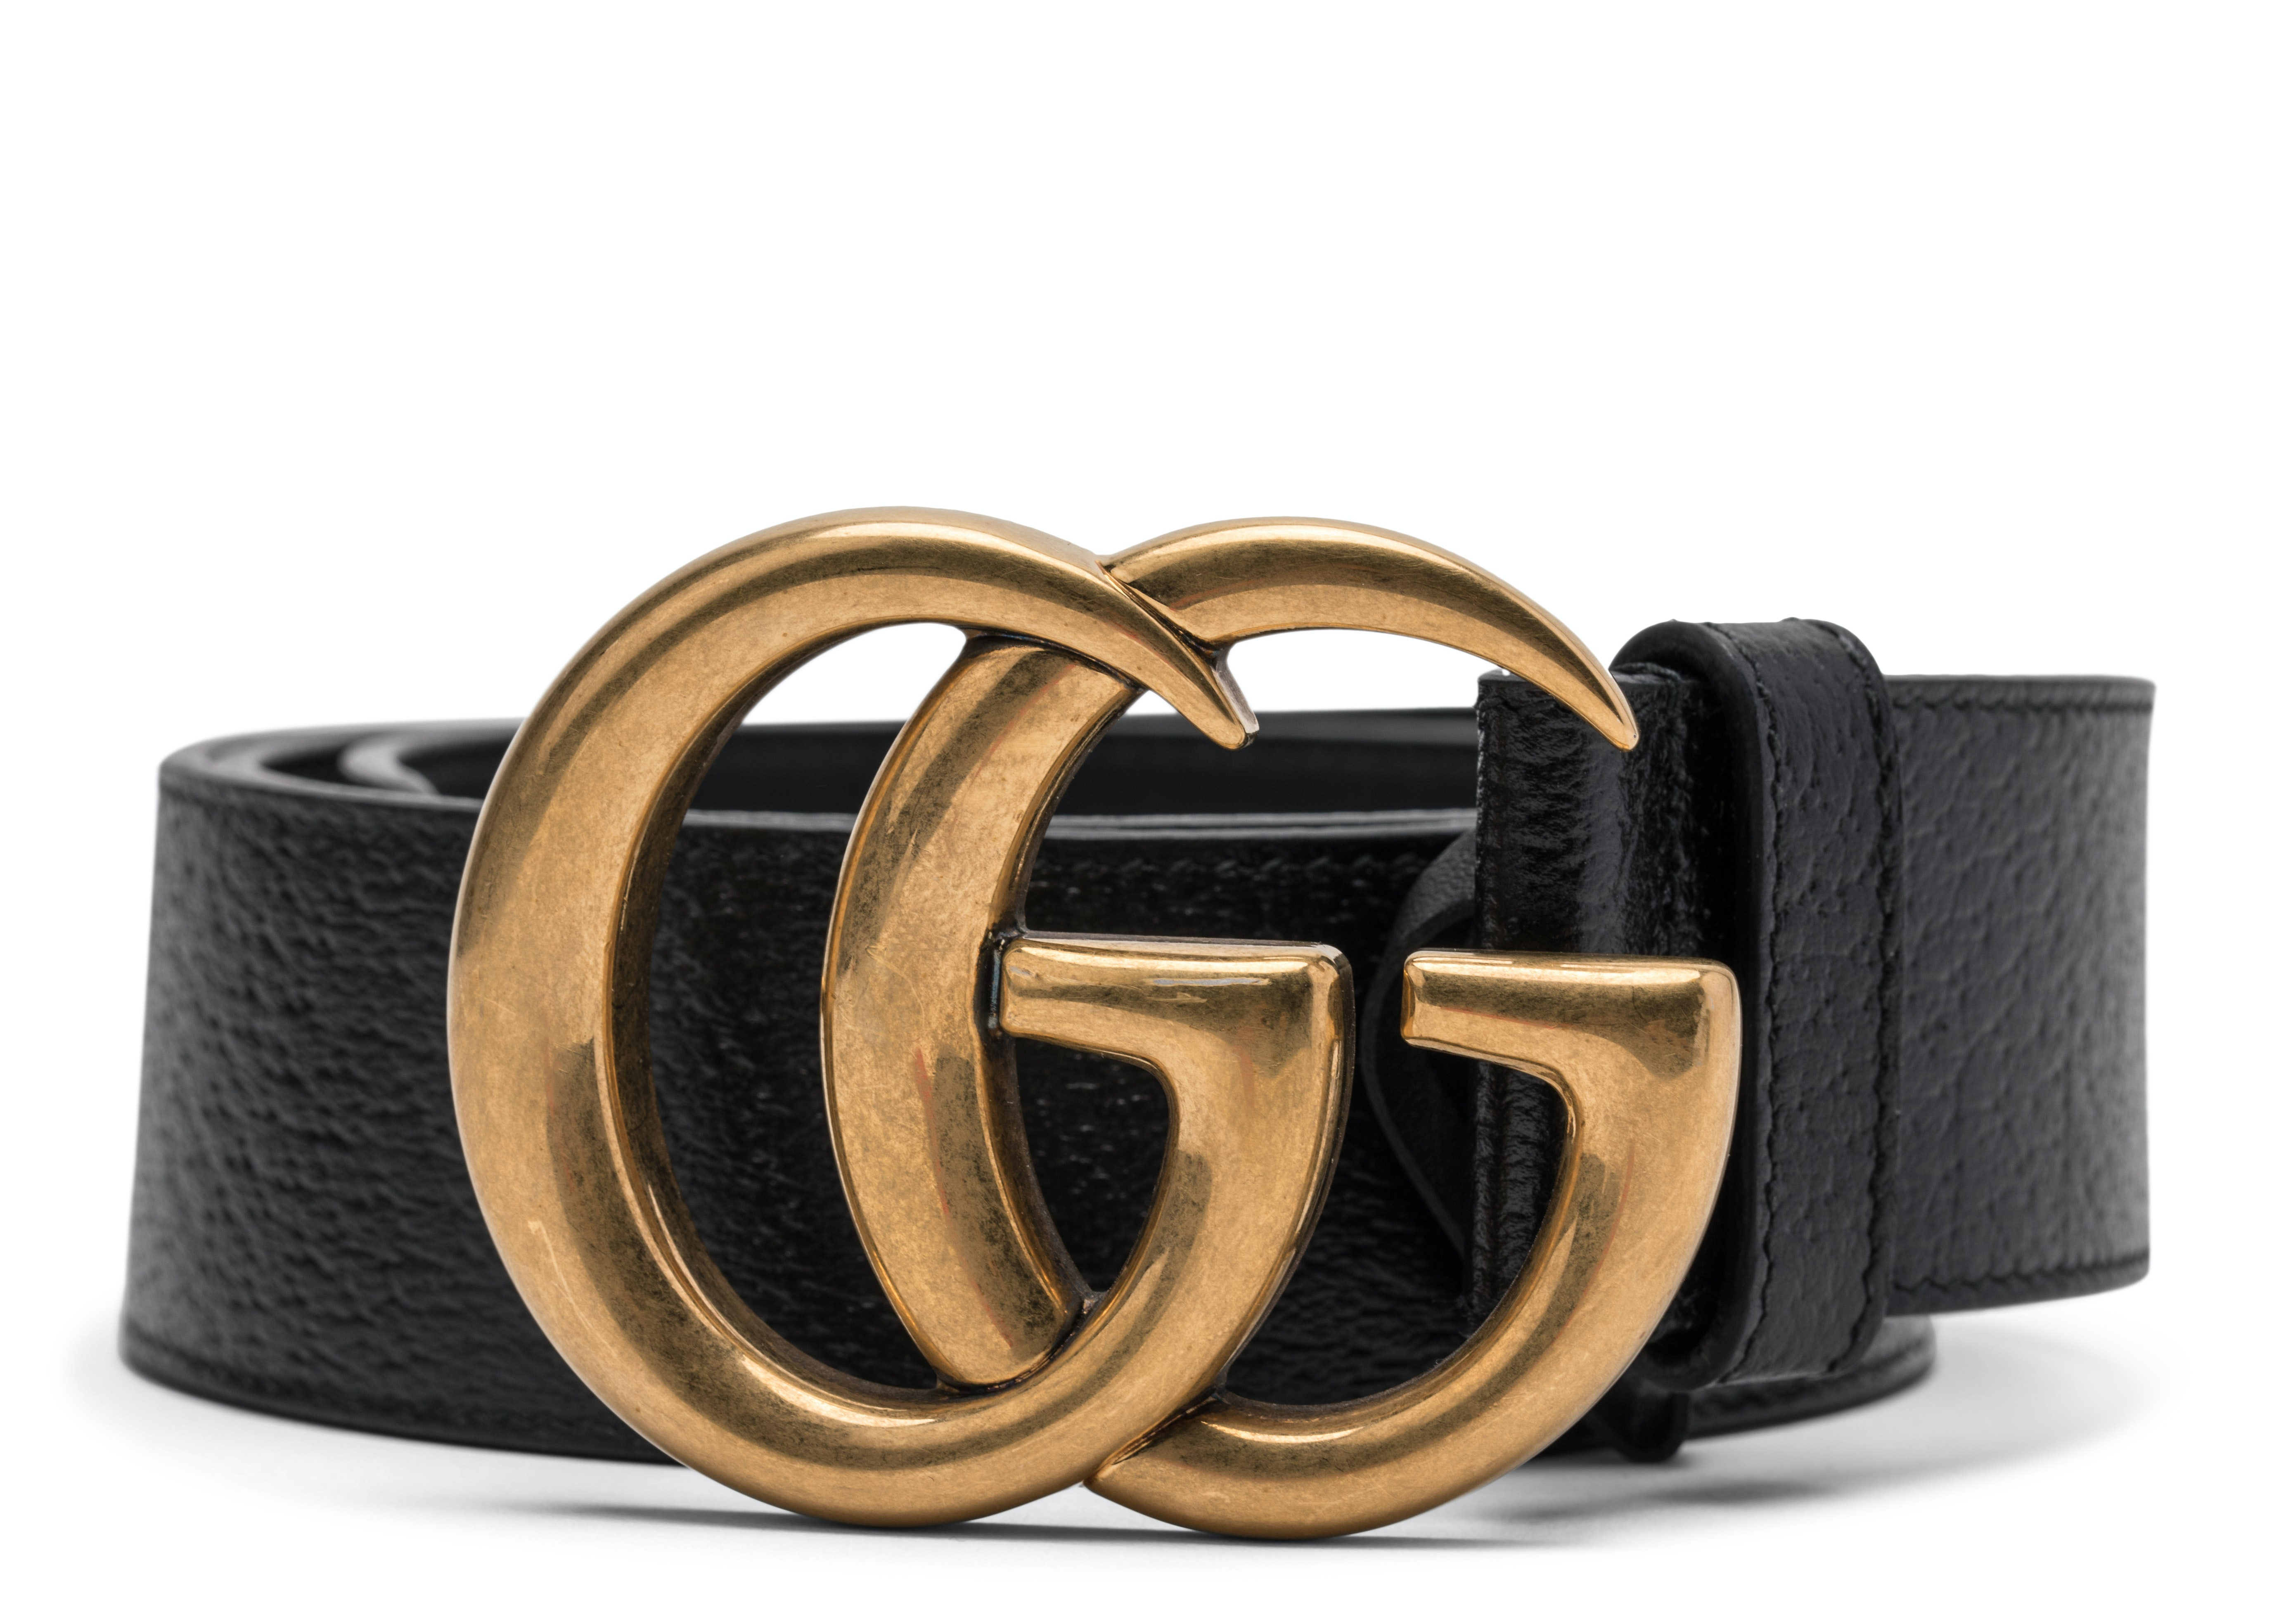 Gucci Double G Gold Buckle Textured Leather Belt 1.5 Width Black